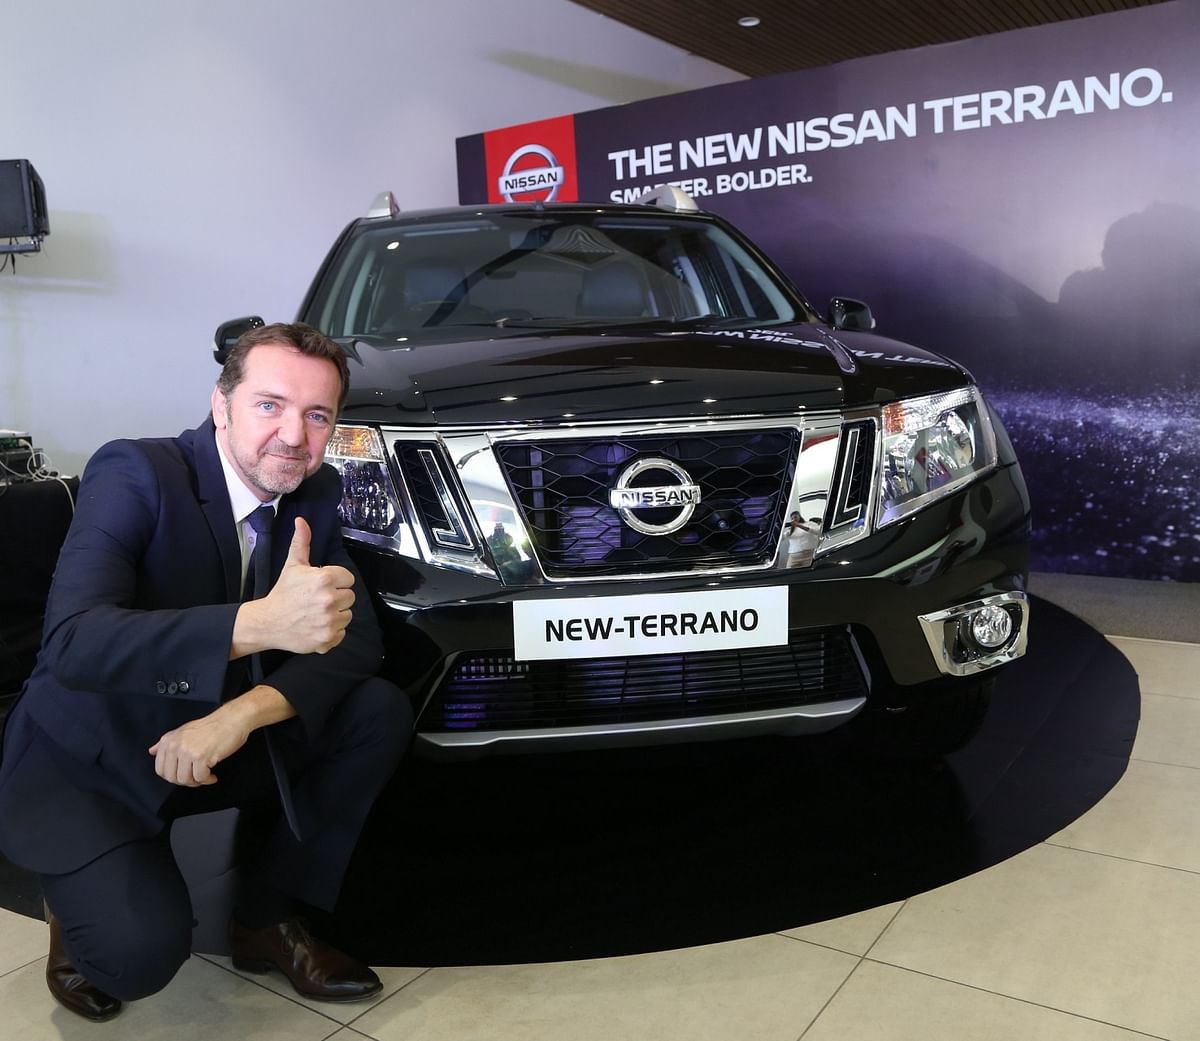 Nissan Terrano Gets A New Face, And Price